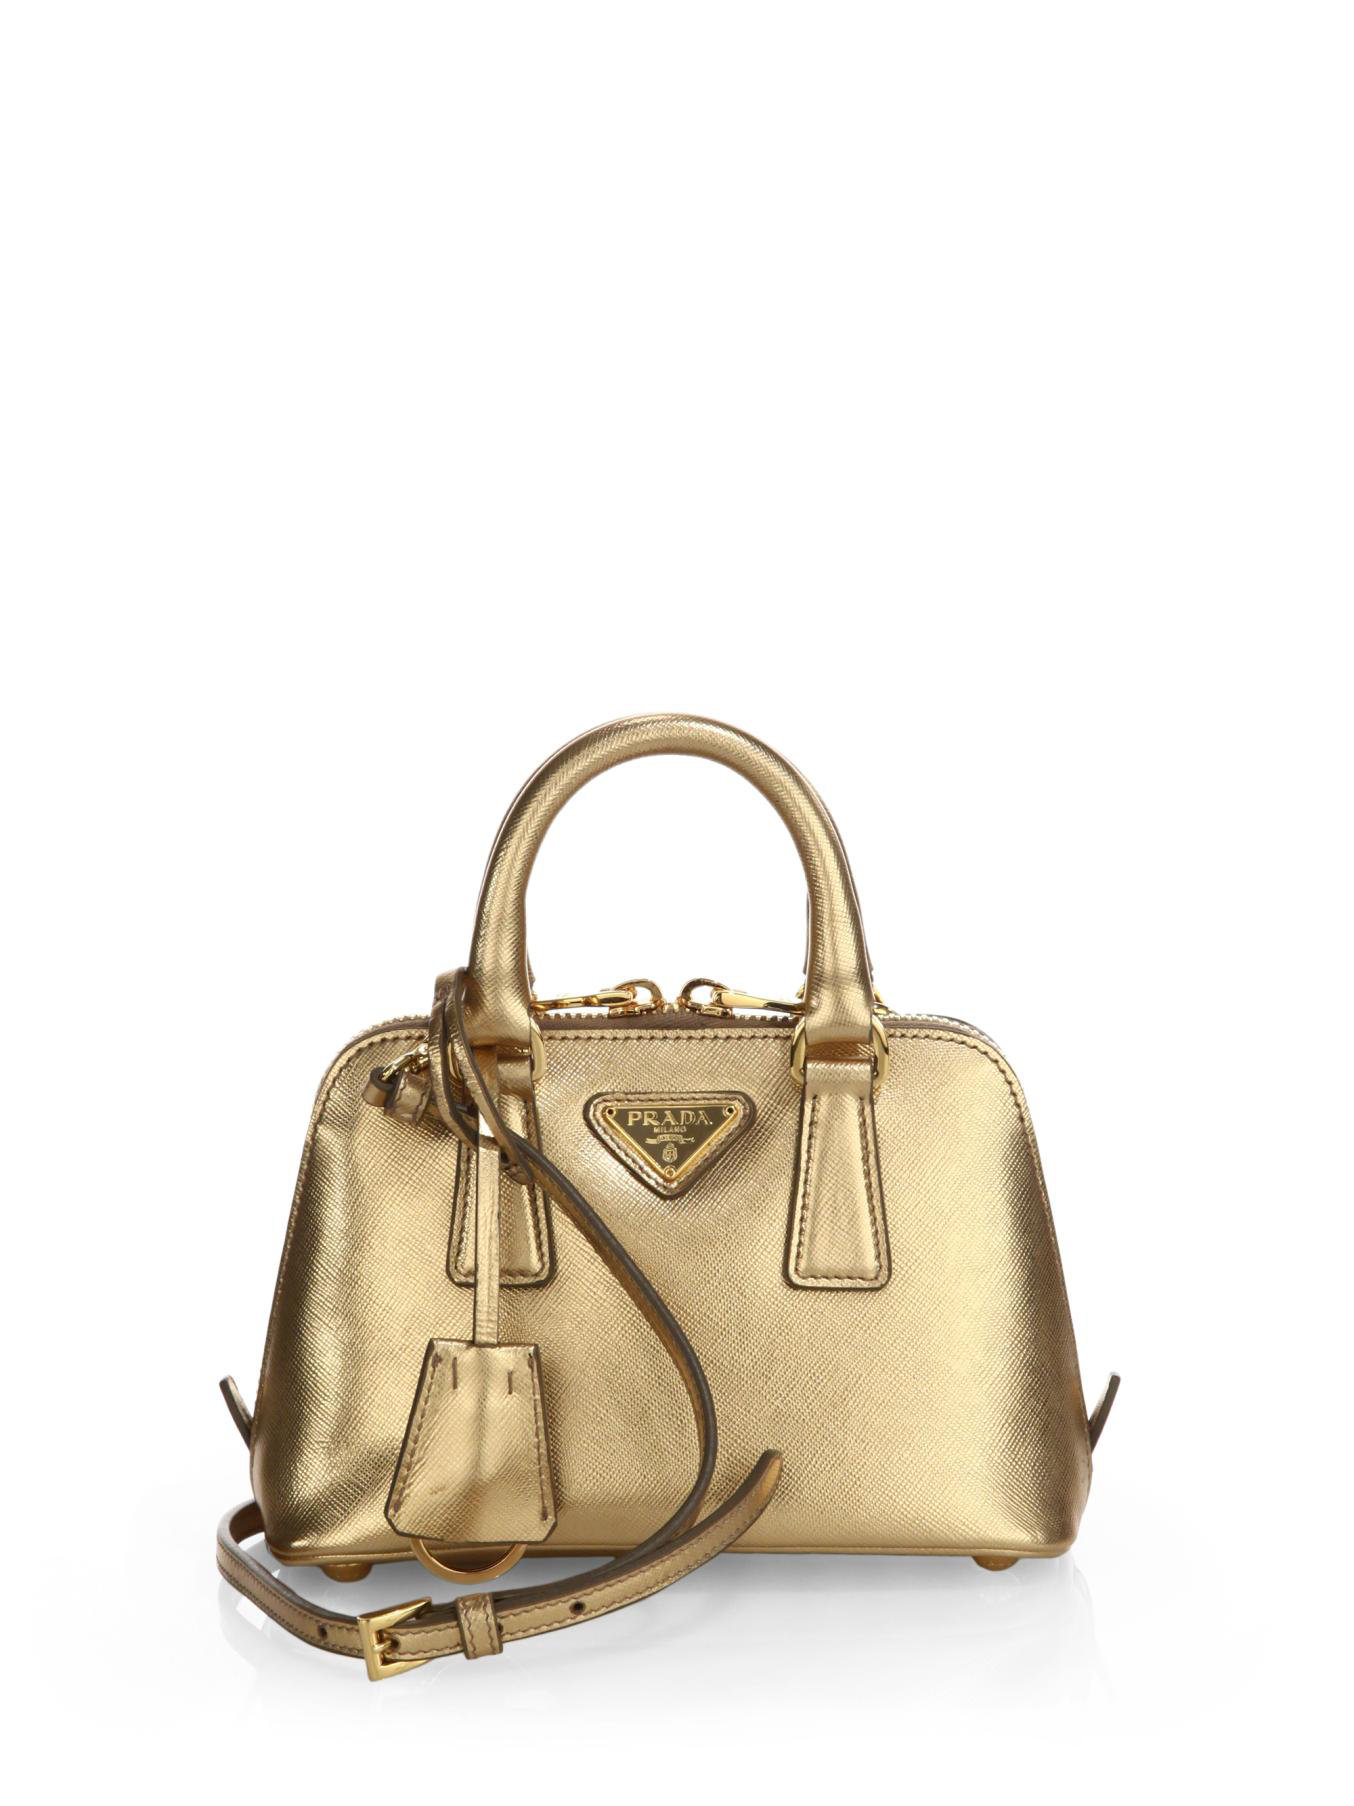 52dbdda5fefb Lyst - Prada Saffiano Lux Double Handle Mini Satchel in Metallic